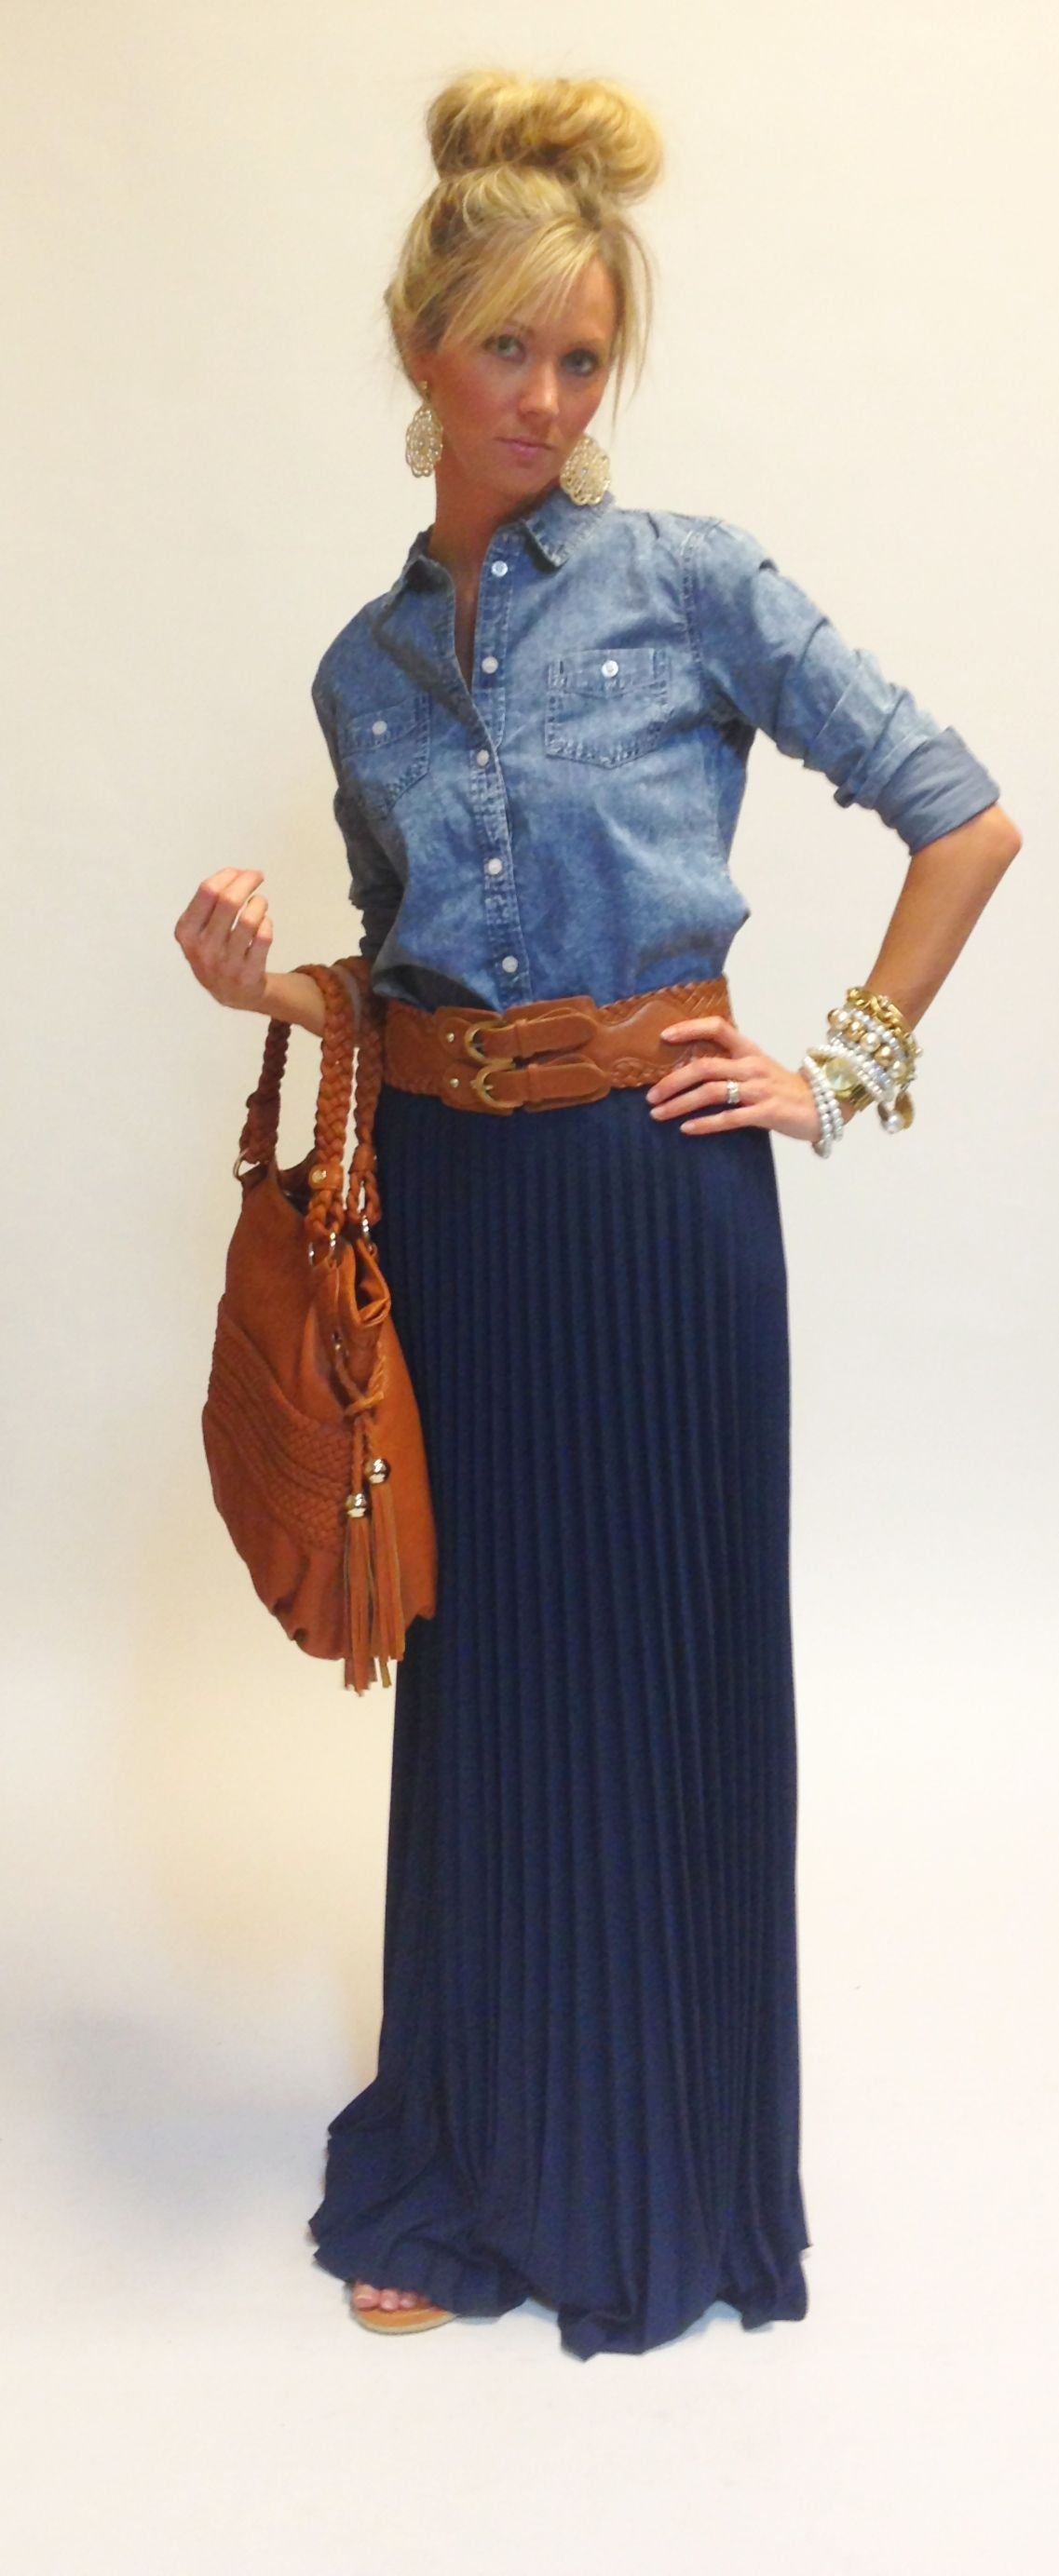 Jean jacket and gray maxi dress | Clothing/fashion | Pinterest ...